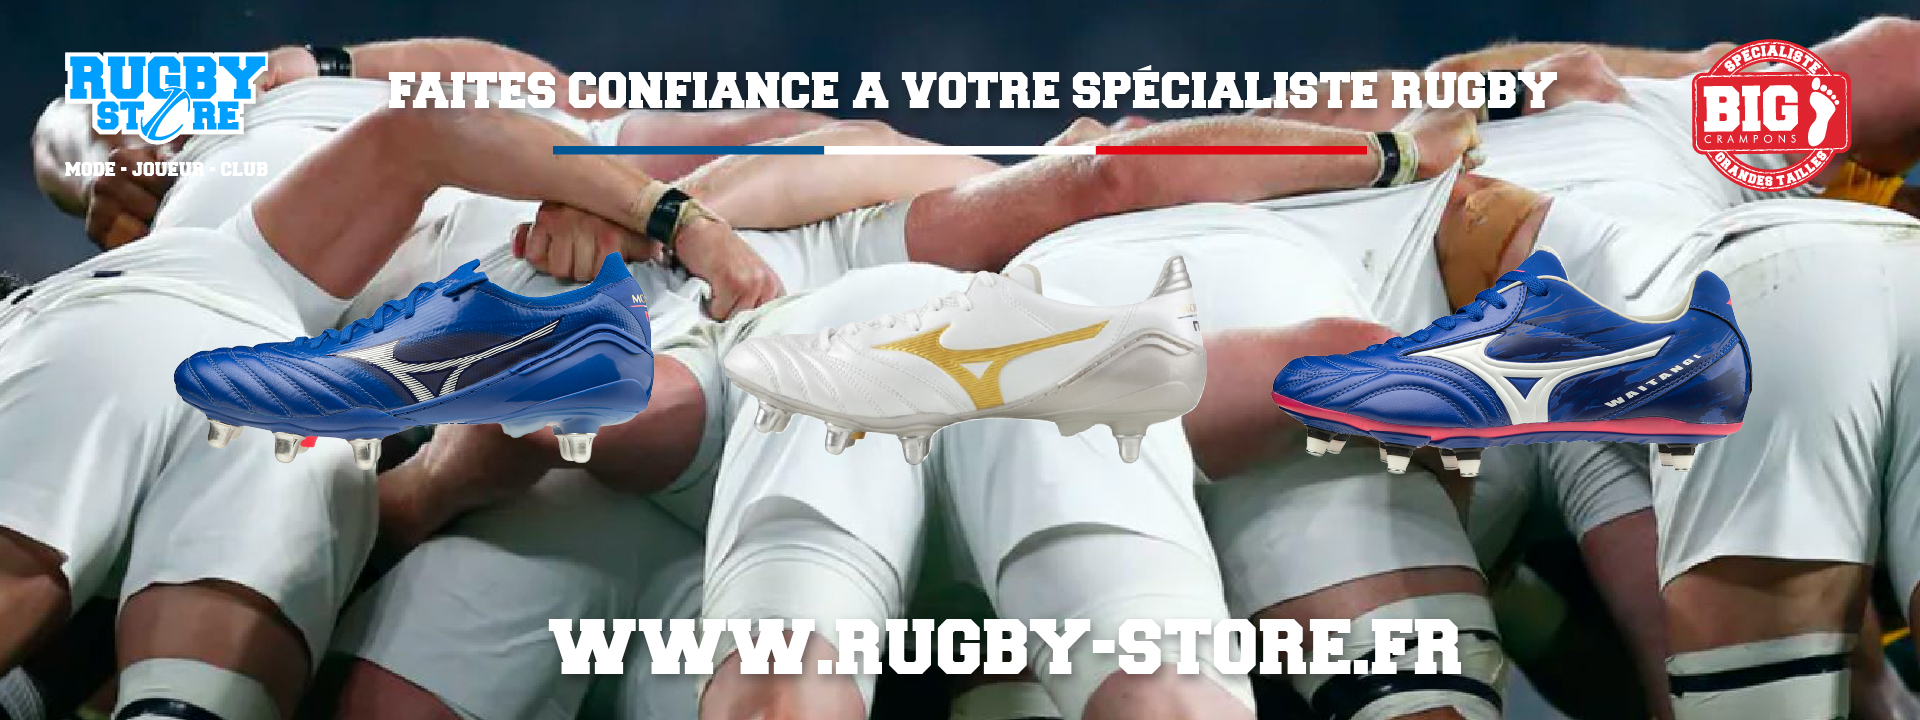 rugby store crampons